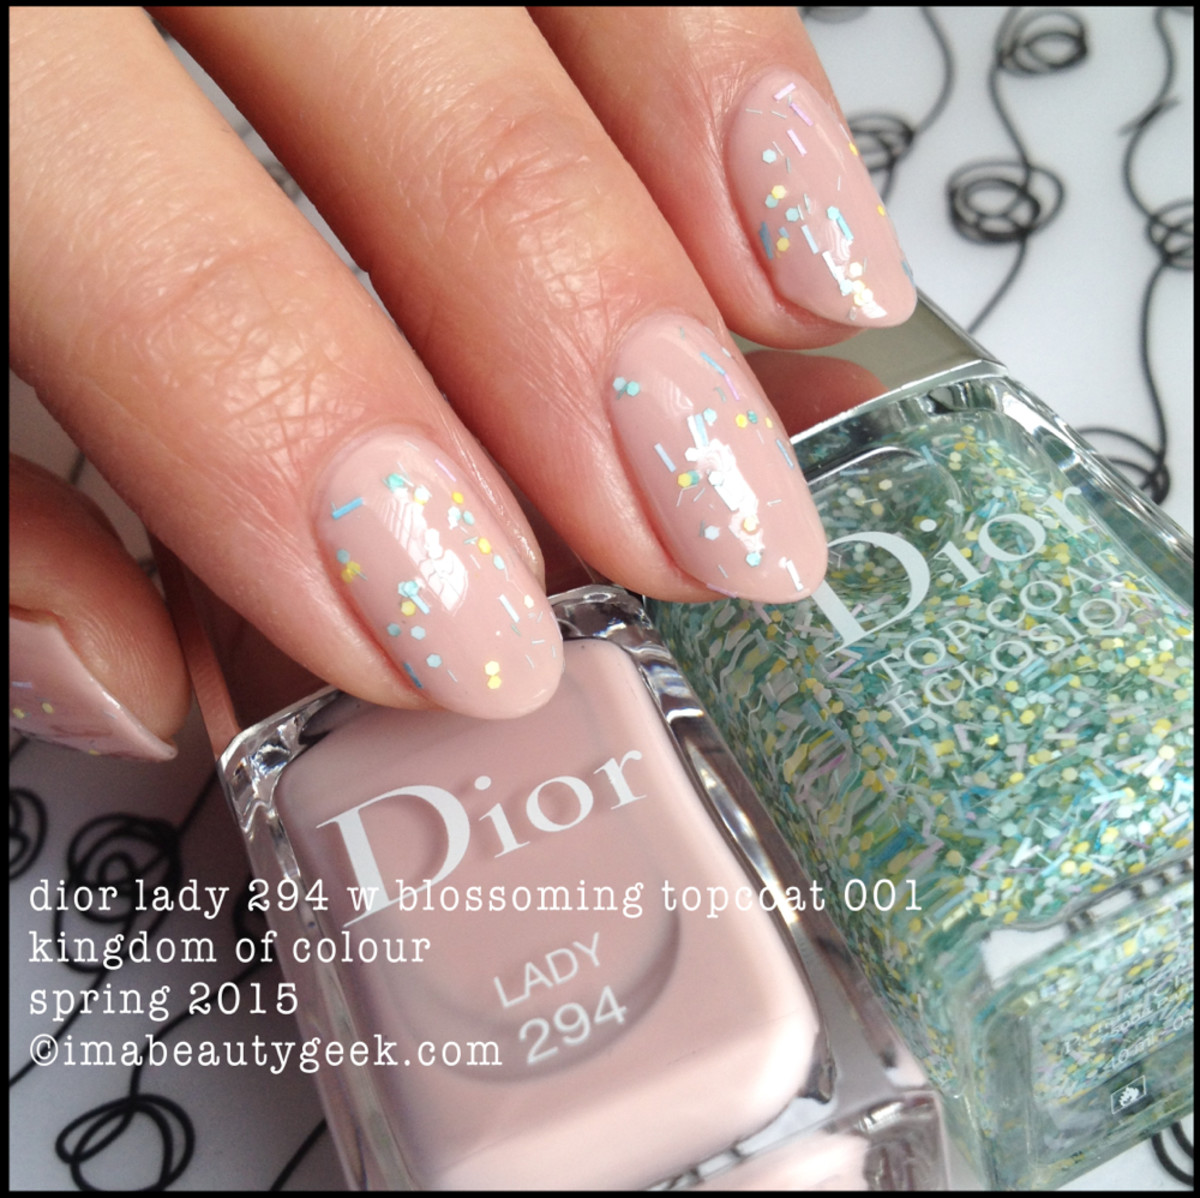 Dior Lady 294 w Blossoming TopCoat 001 Spring 2015